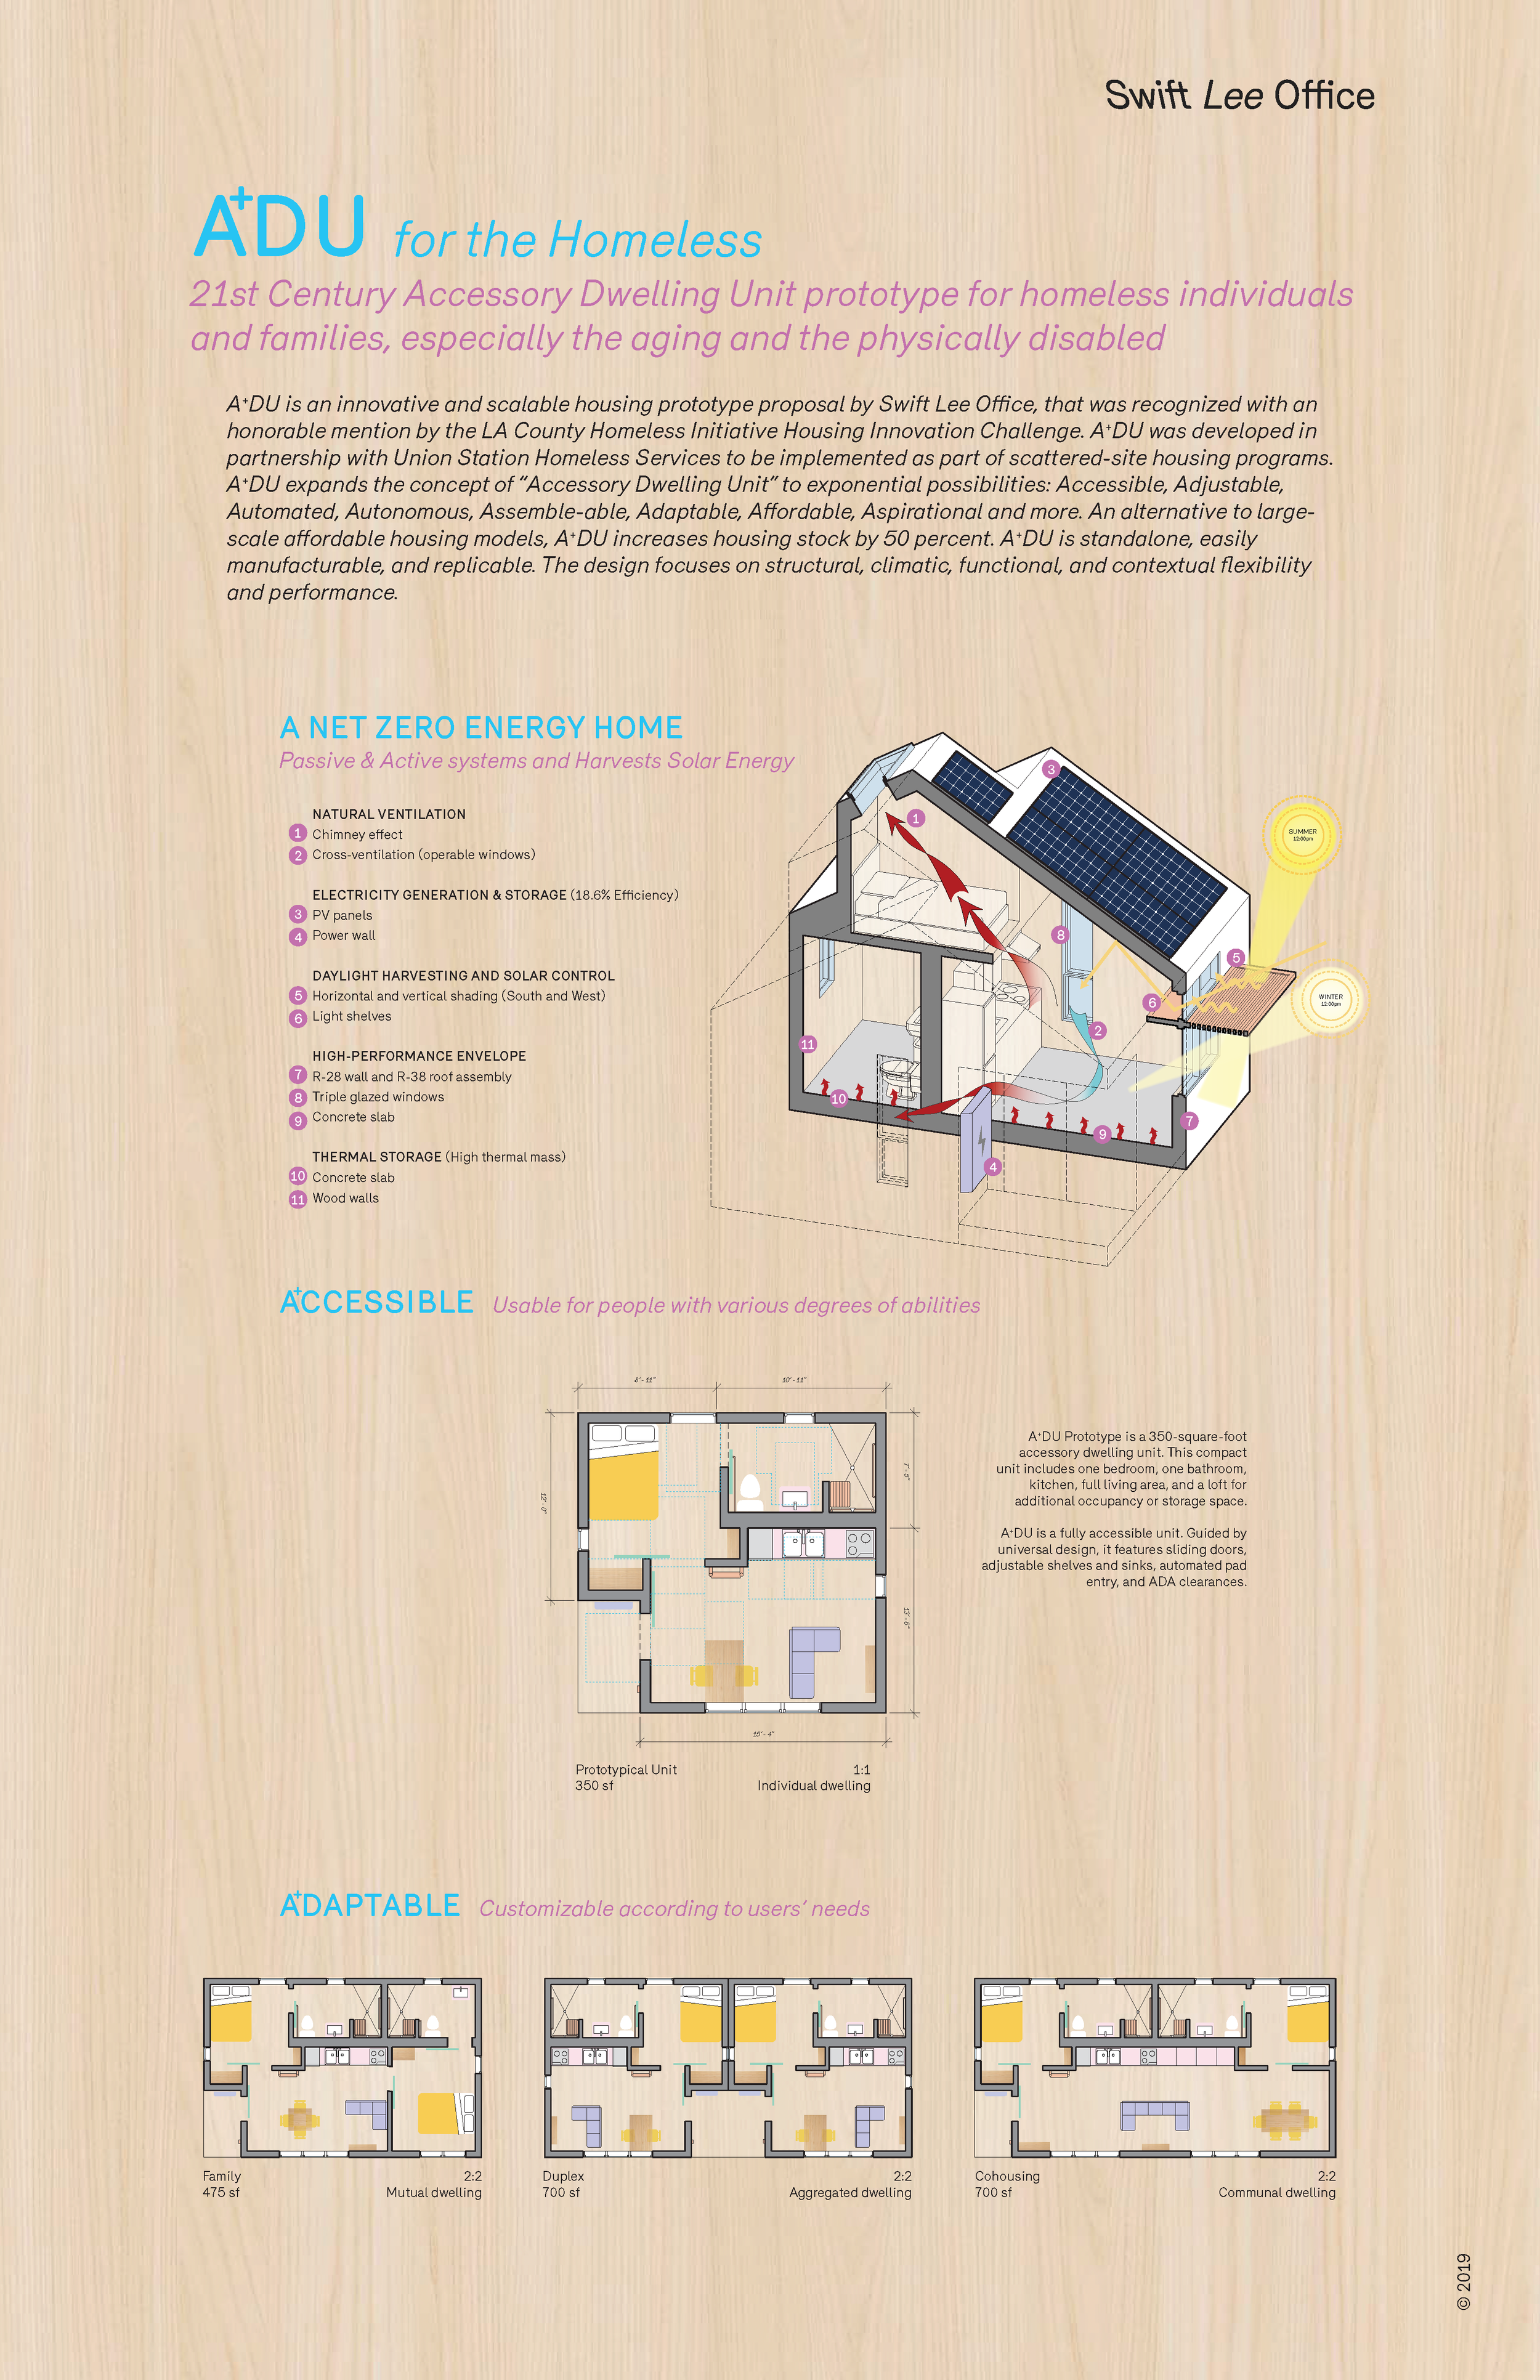 19.07.11_A+DU BOARDS_FINAL_11X17_WOOD_600DPI_Page_1.png